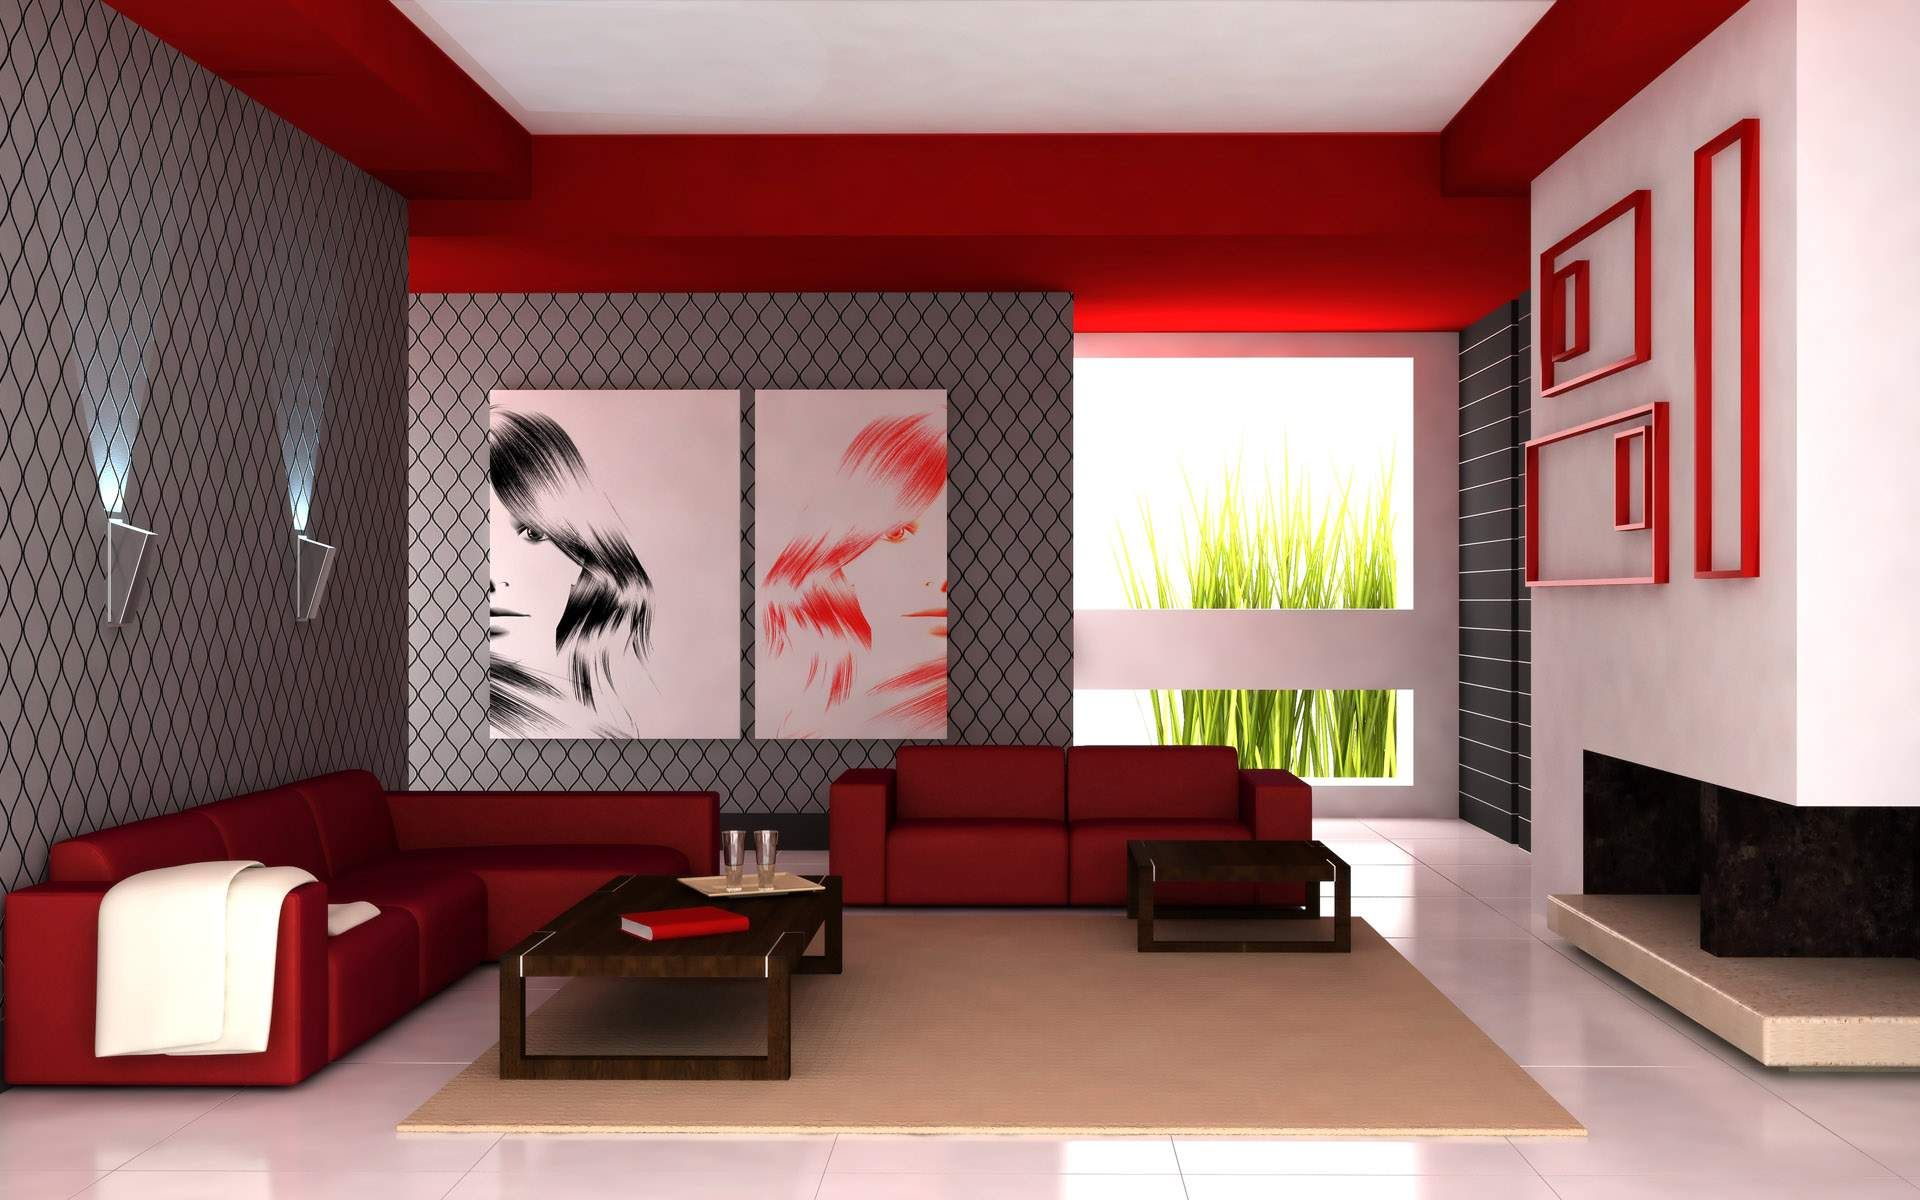 Living Room Decorating Ideas Red Walls cool living room interior with flashy red color - stylendesigns